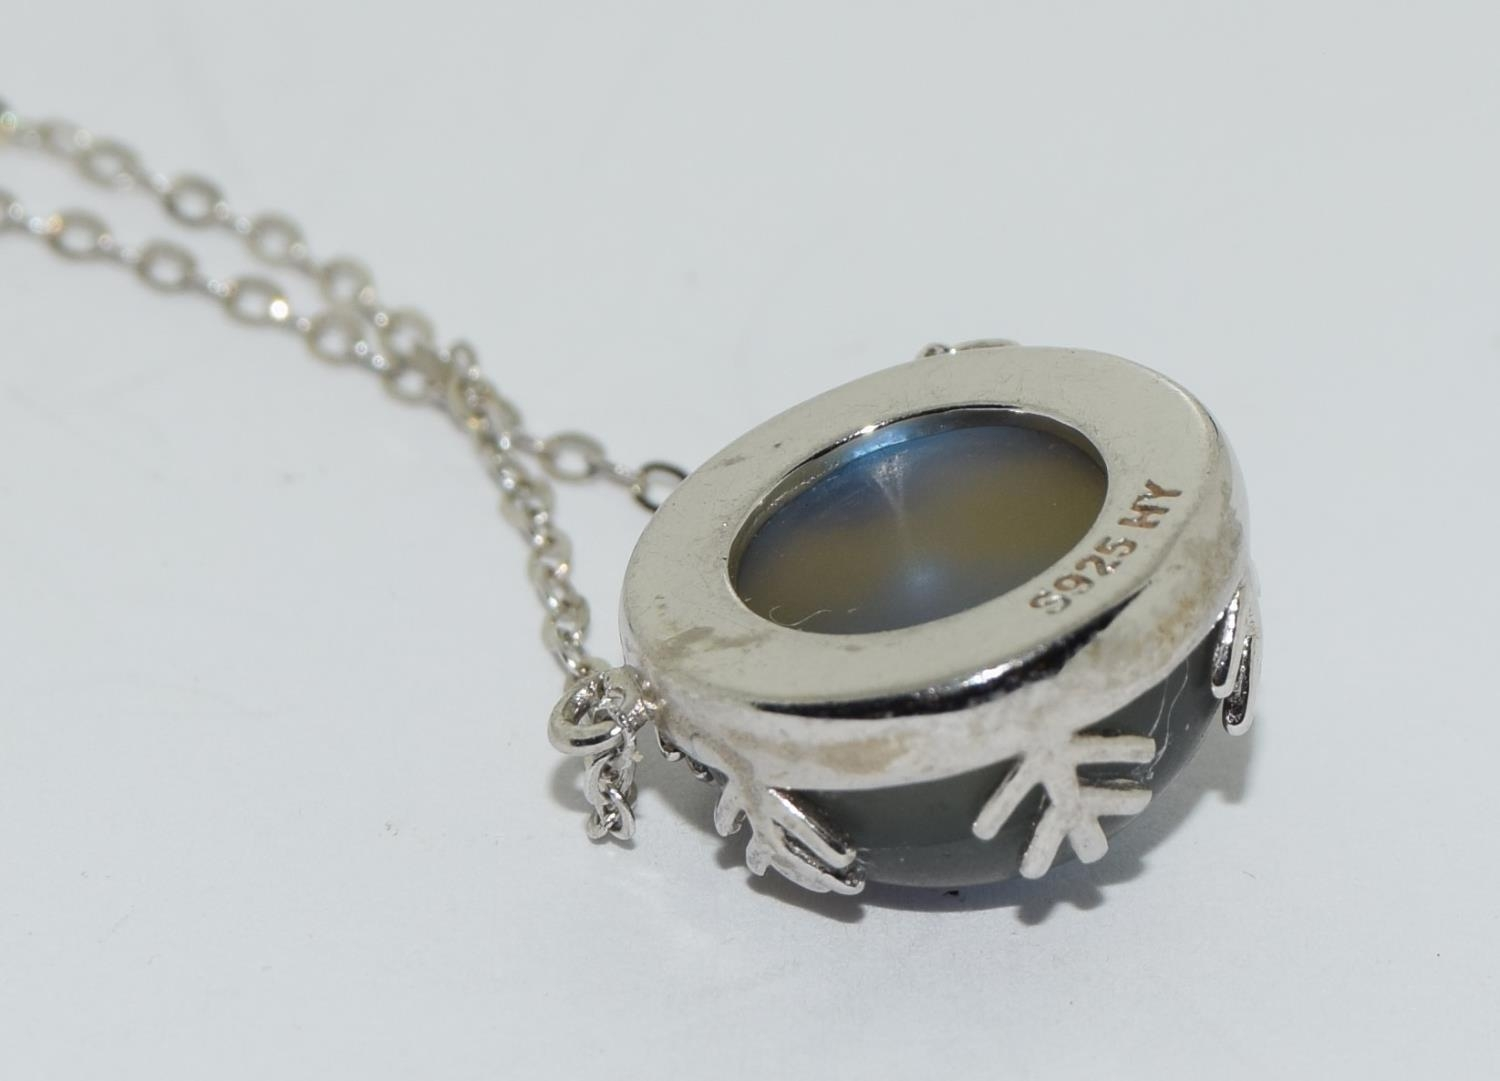 Colourful Mystic Moonstone 925 silver pendant. - Image 3 of 3